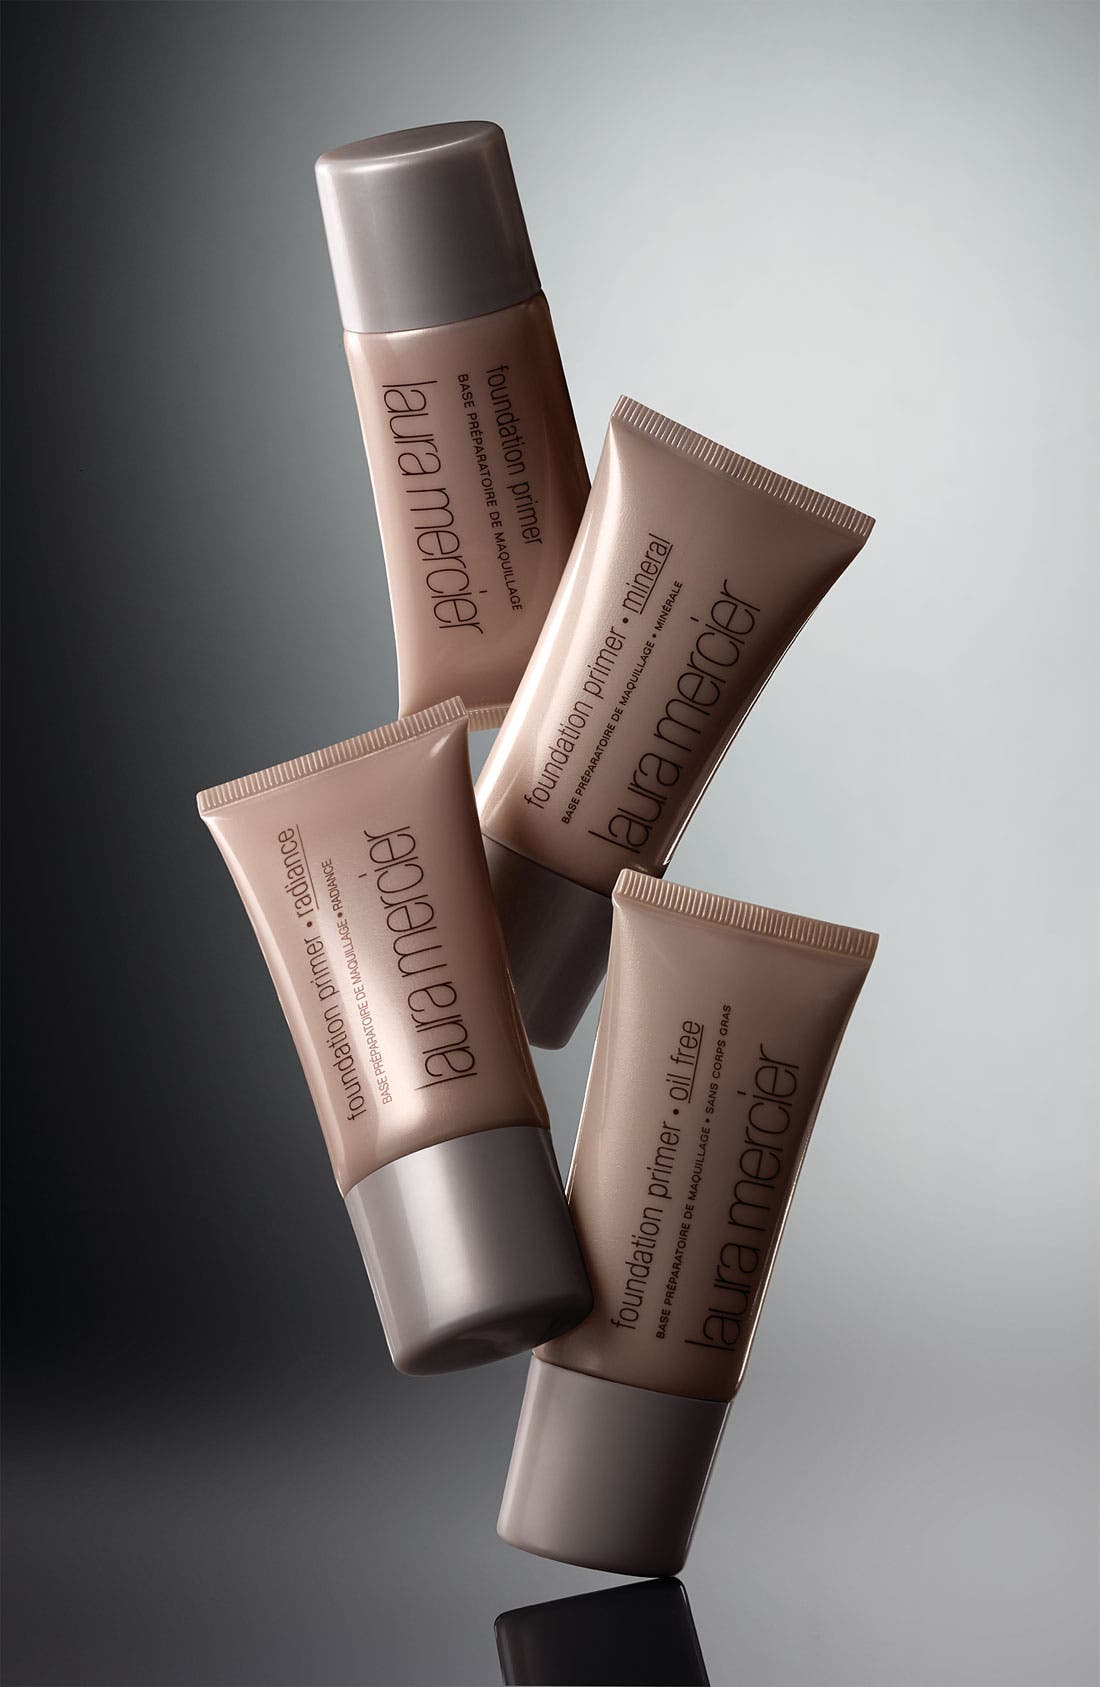 'Radiance' Foundation Primer,                             Main thumbnail 1, color,                             000